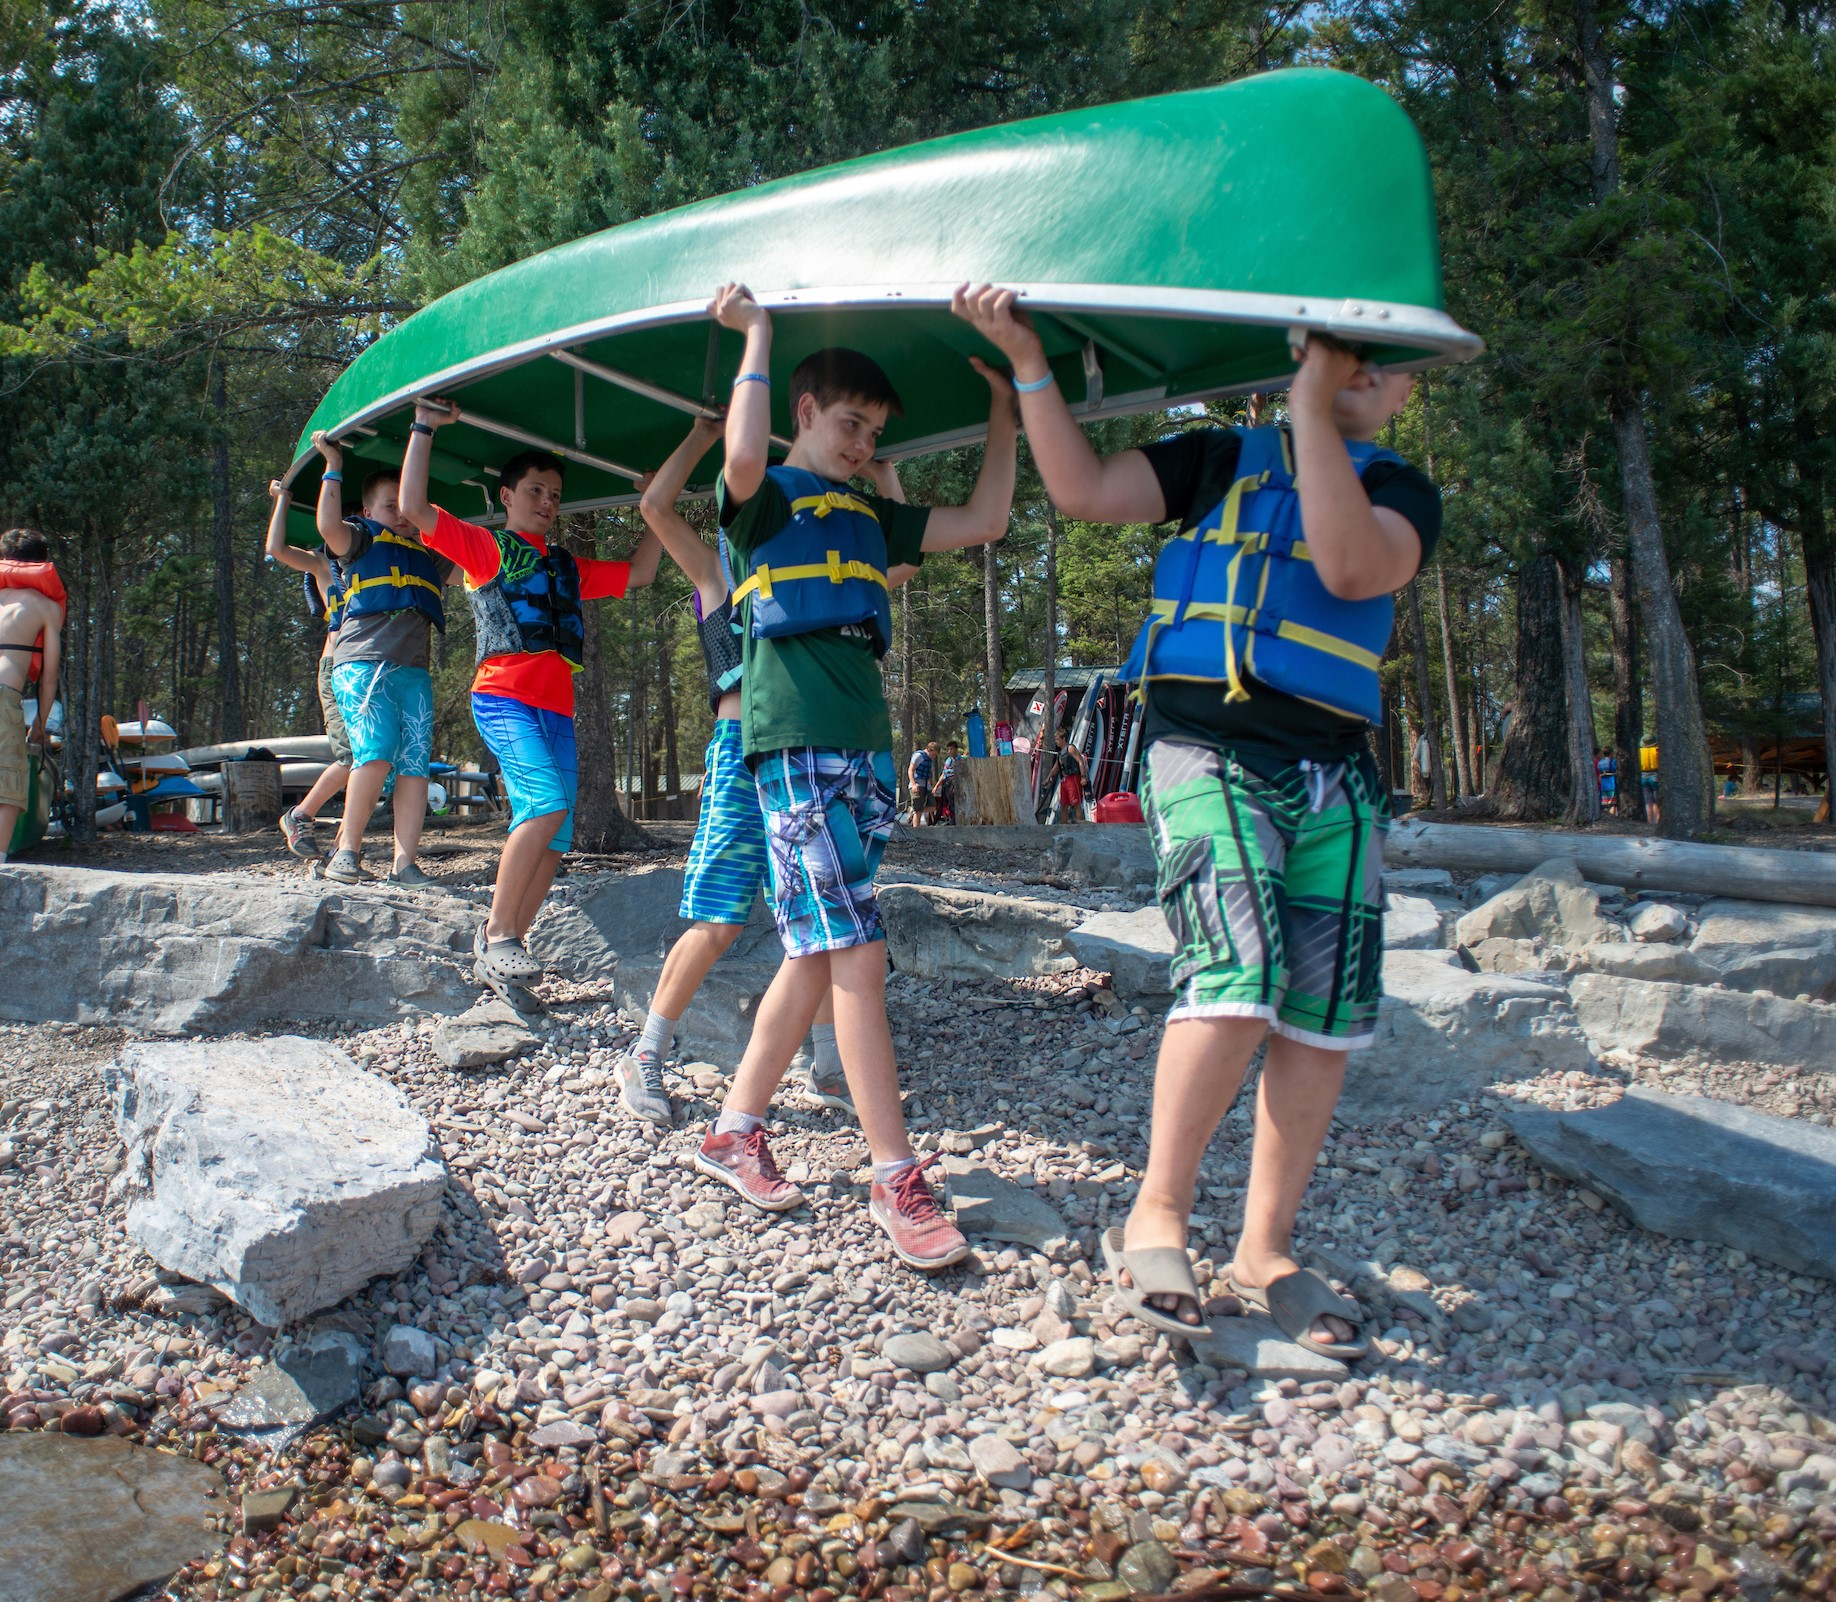 Several Boy Scouts carry a canoe to a lake at summer camp in Montana.